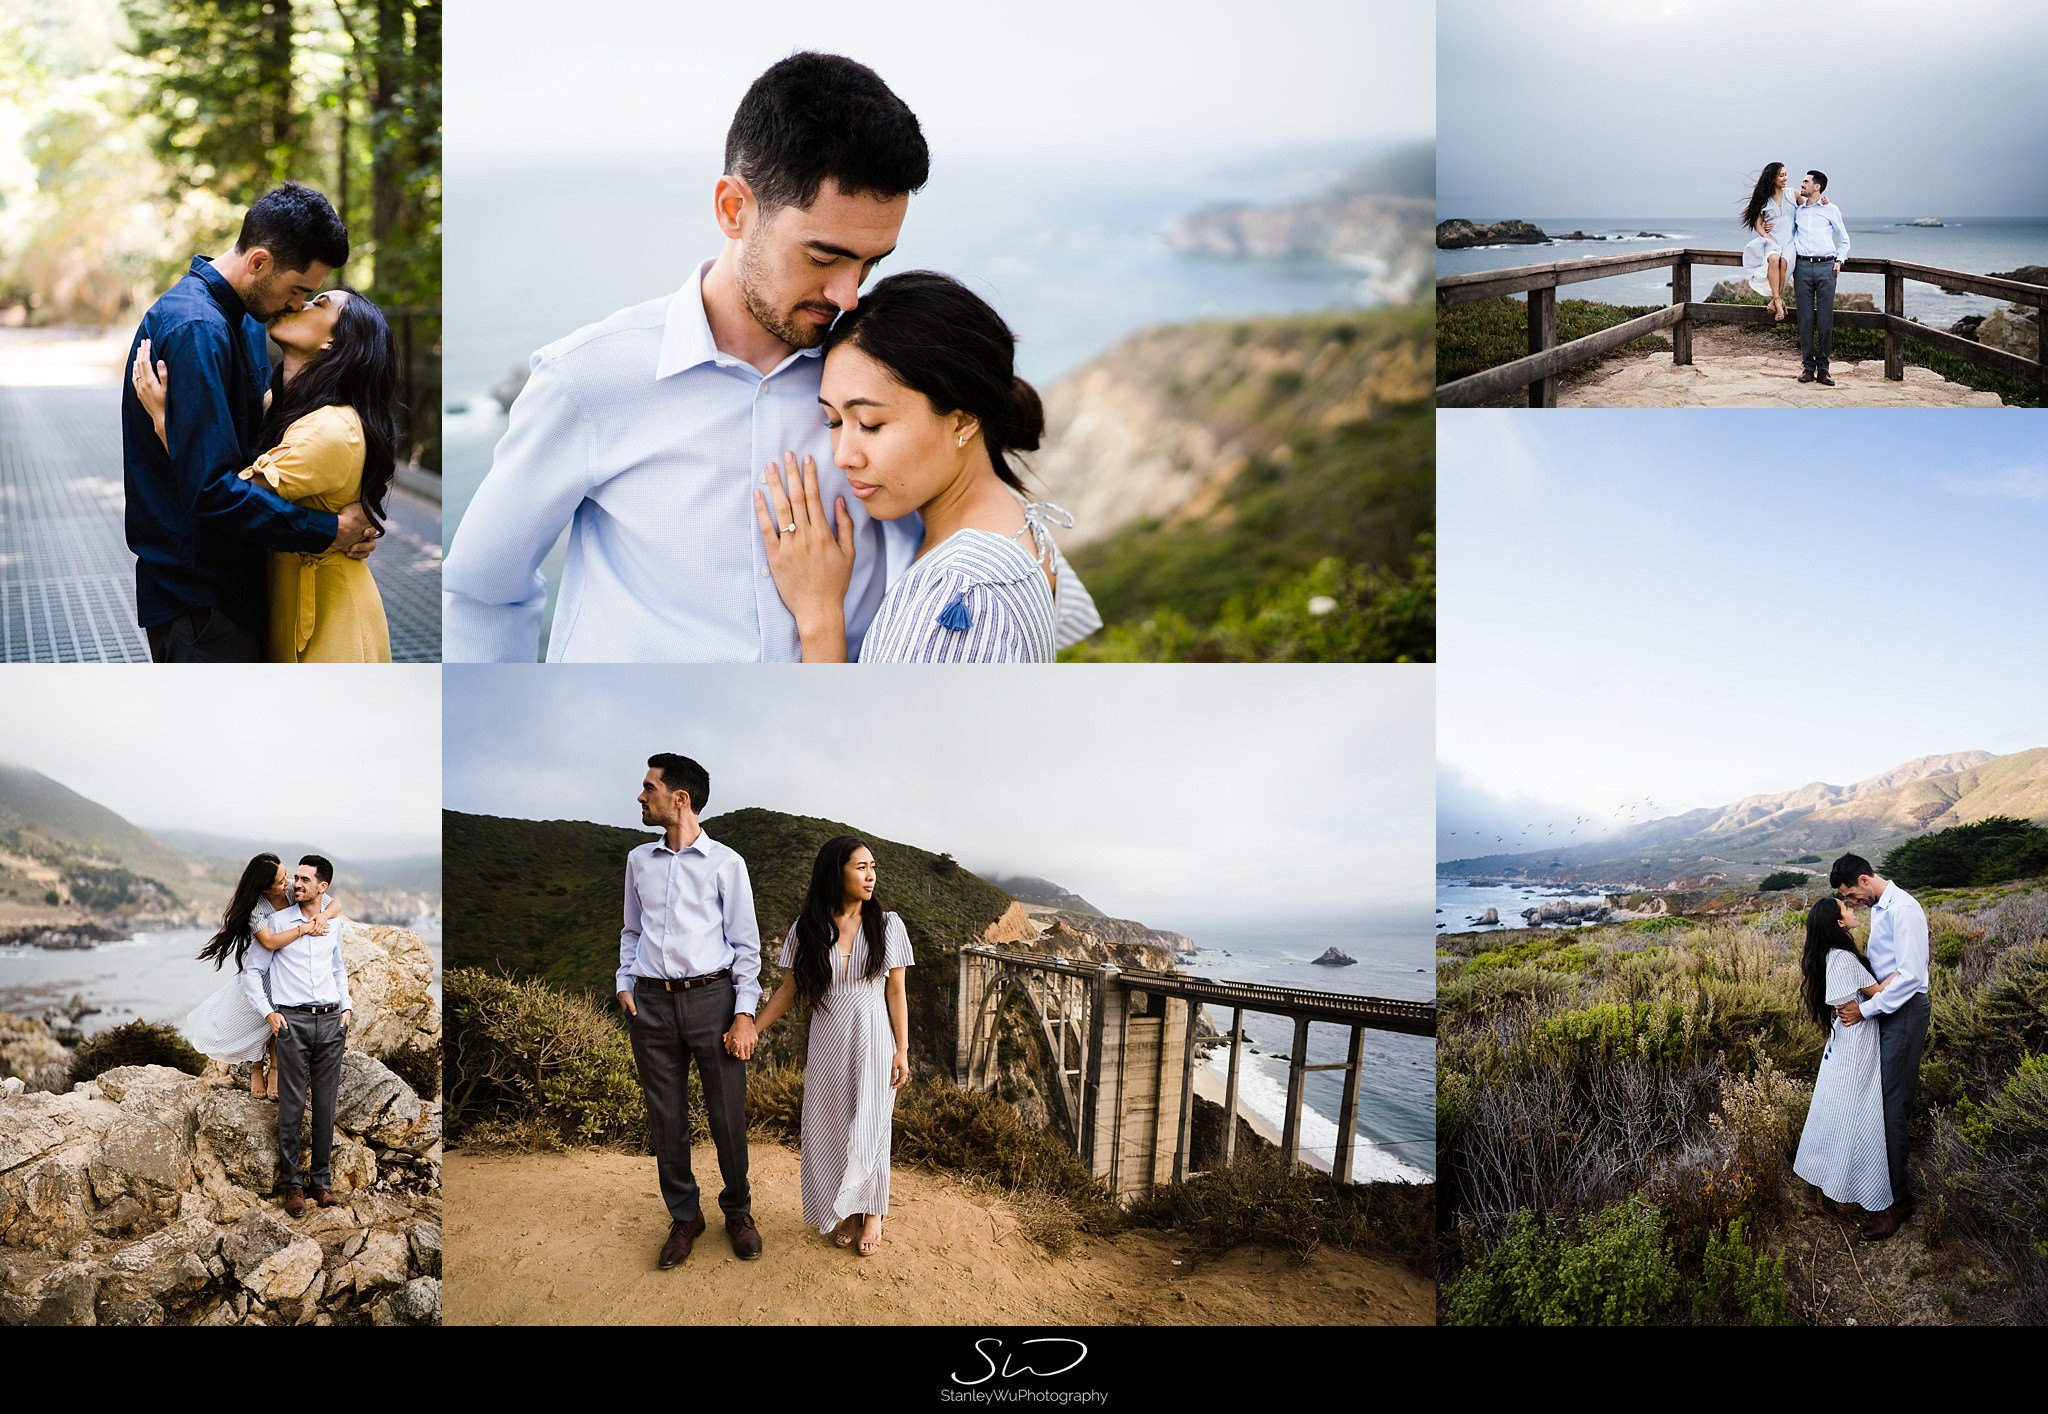 Sarah + Cameron – Big Sur Engagement 2